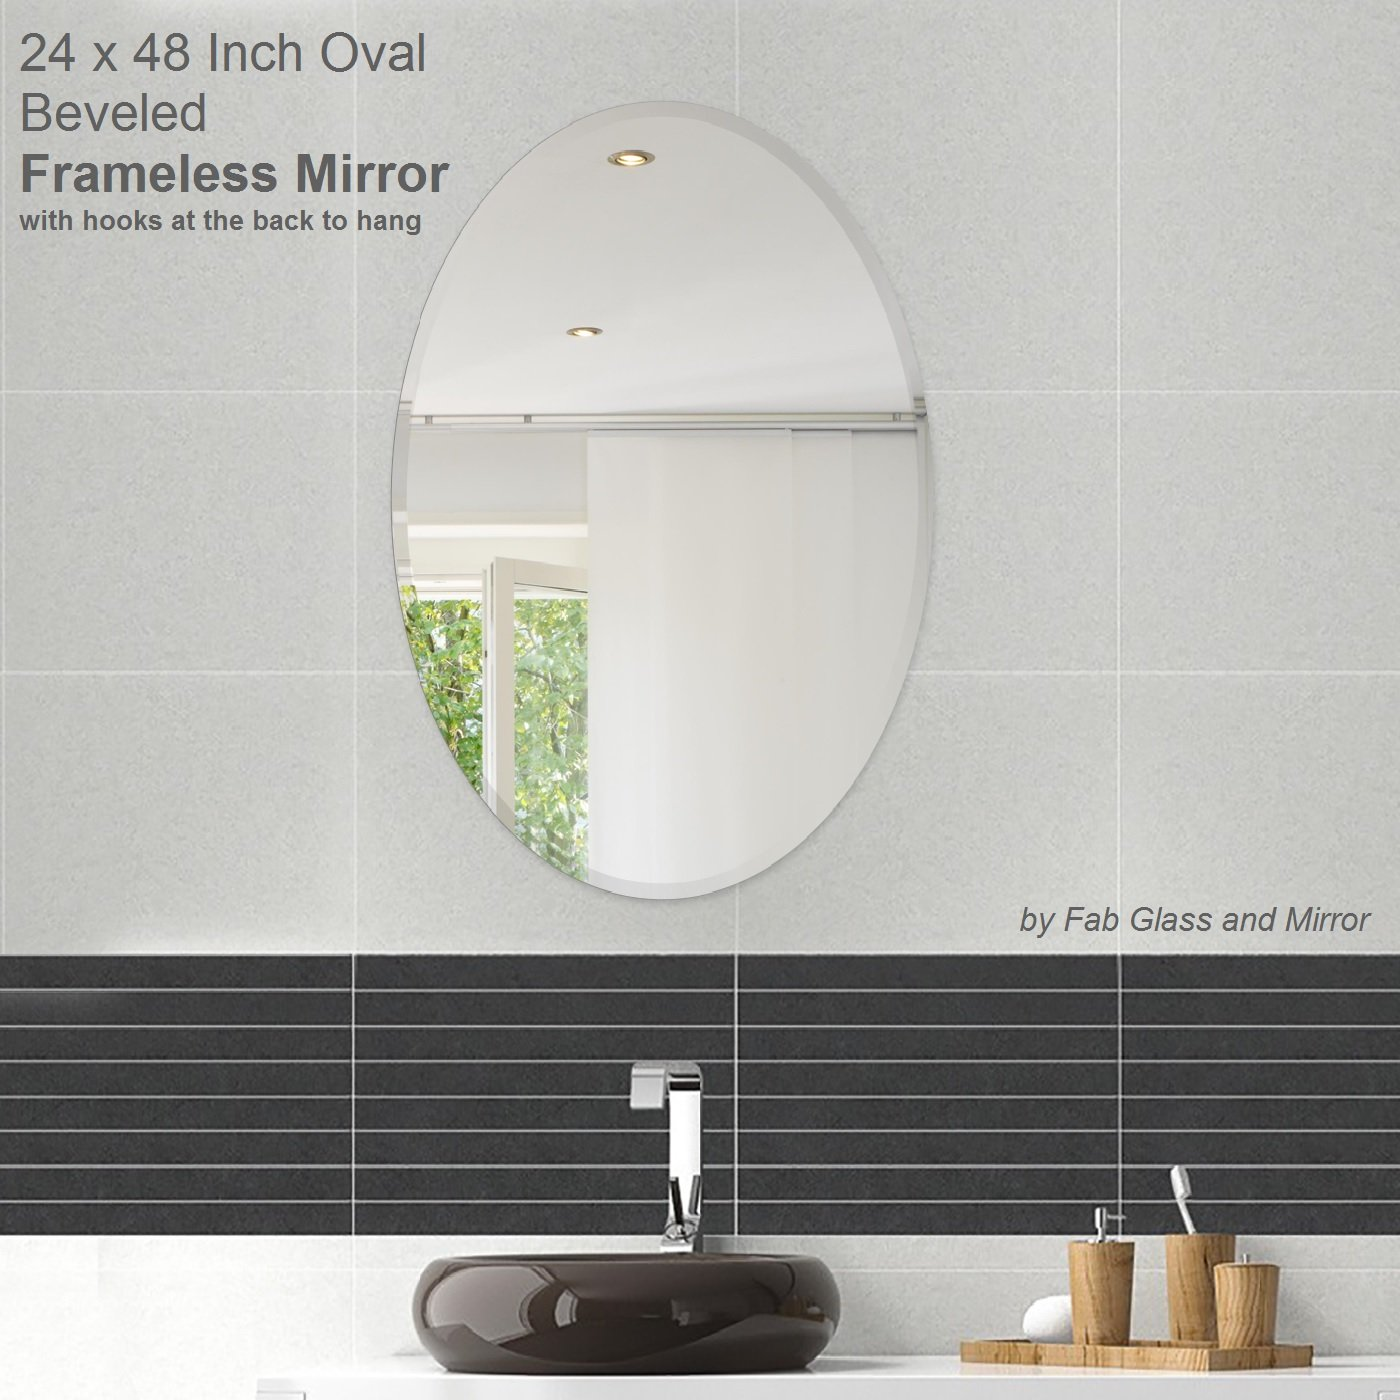 Amazon fab glass and mirror oval beveled polish frameless amazon fab glass and mirror oval beveled polish frameless wall mirror with hooks 24 l x 36 w home kitchen amipublicfo Images